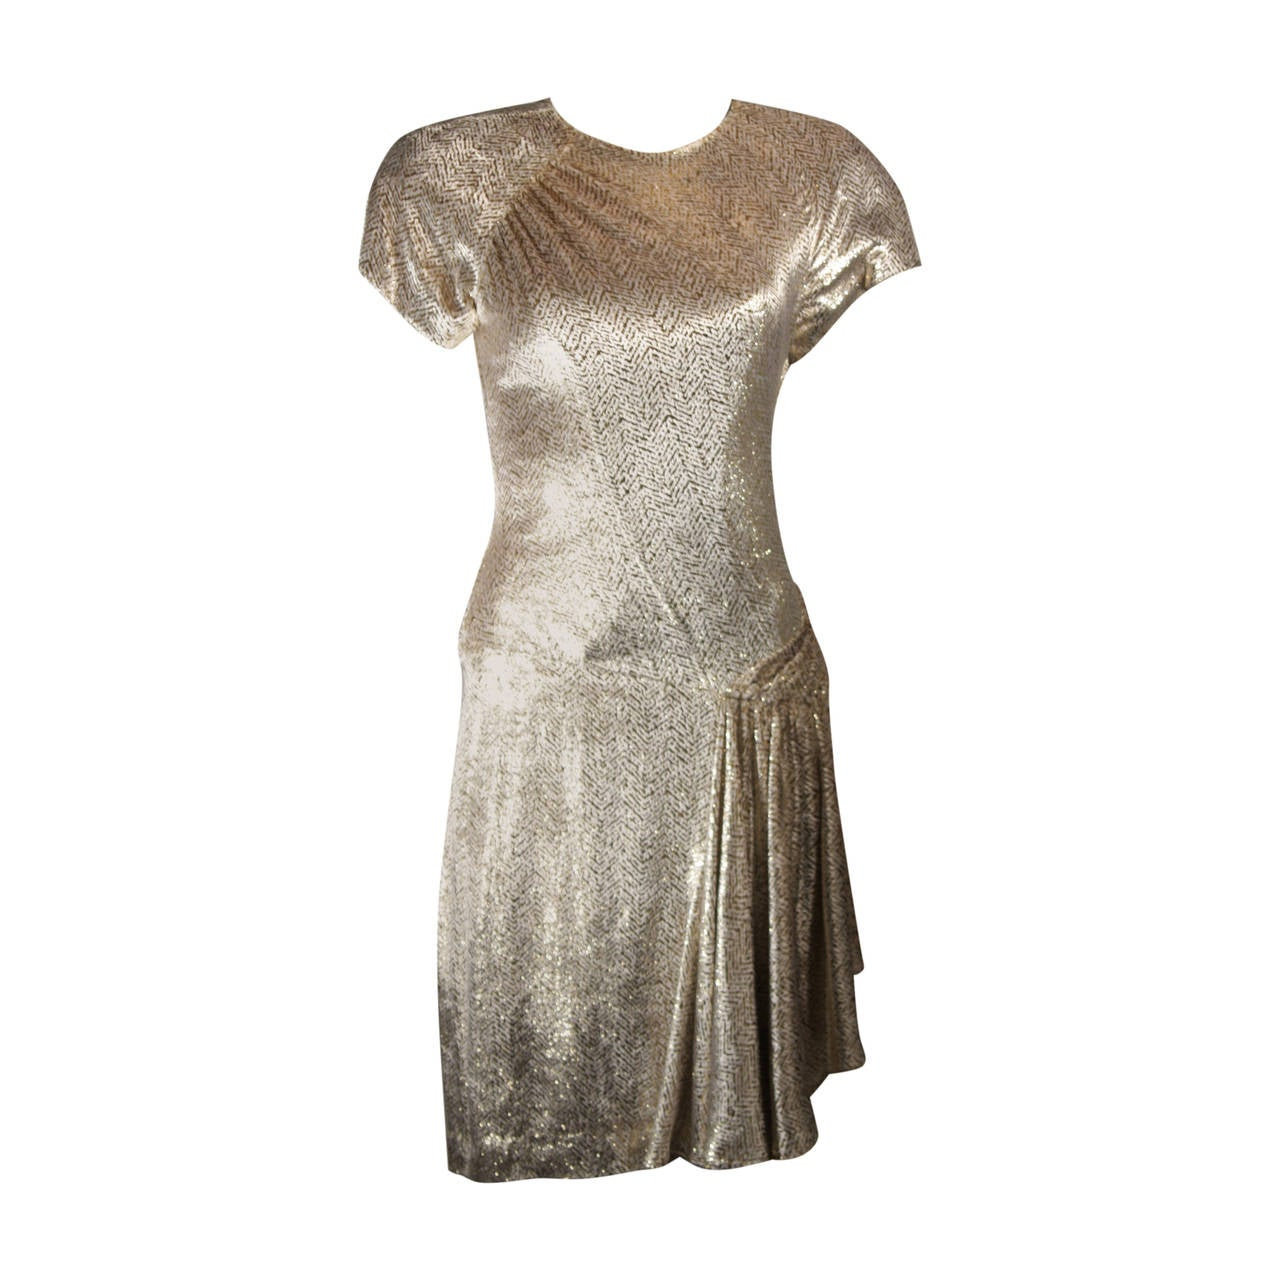 Vicky Tiel Ivory and Gold Velvet Texture Cocktail Dress Size 38 For Sale